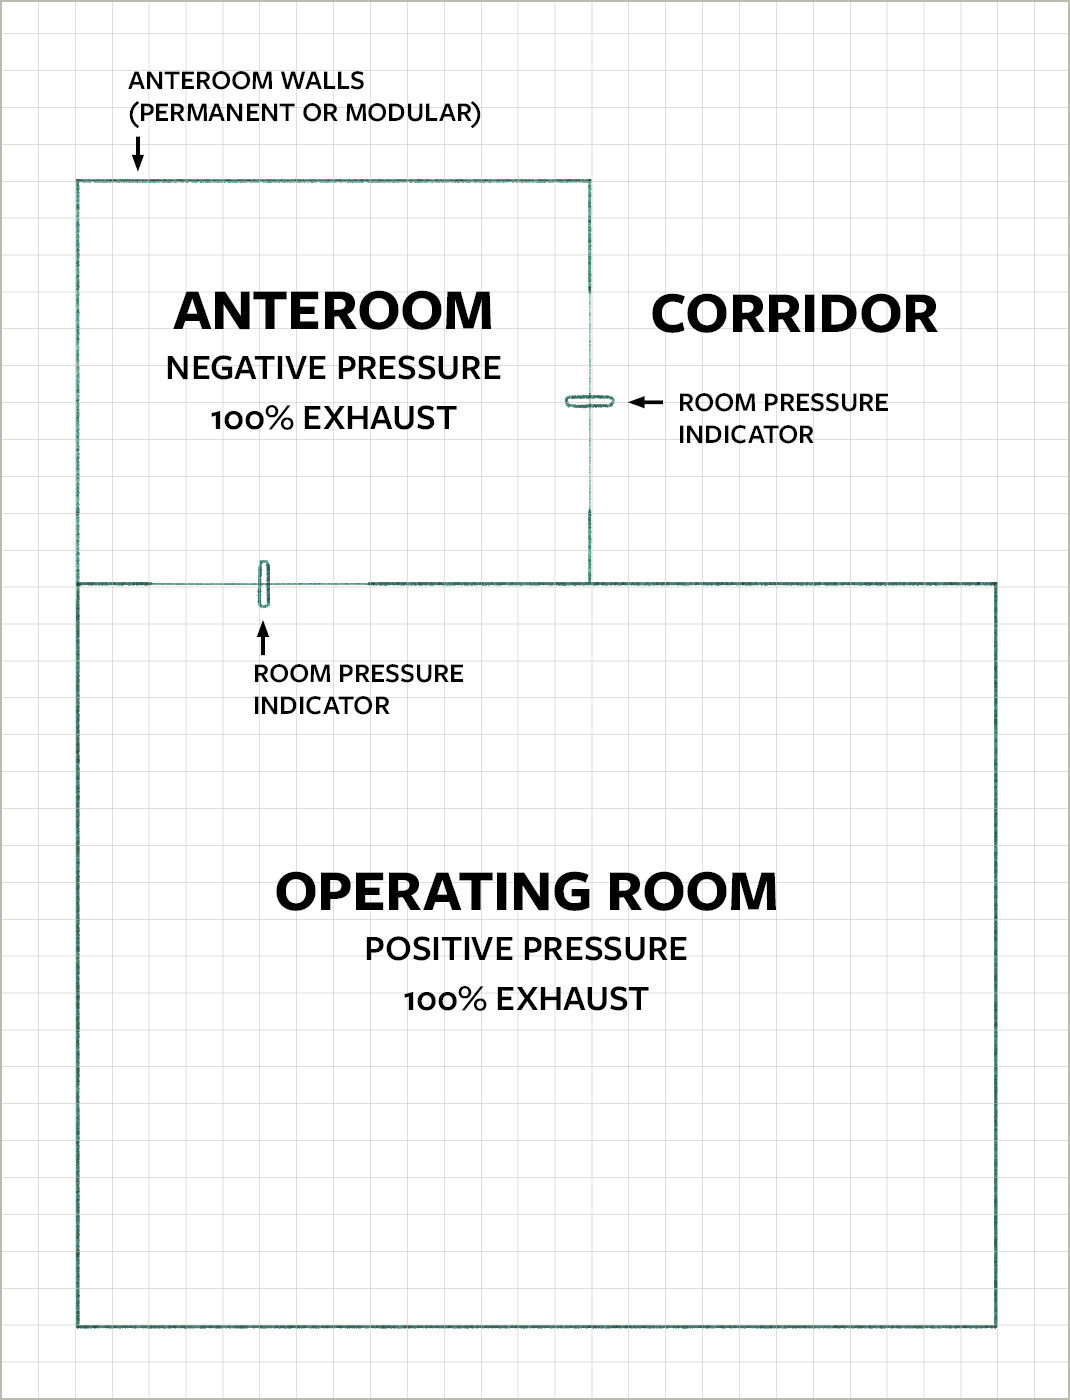 Basic Components of and Air Pressure Relationships in an AII Operating Room